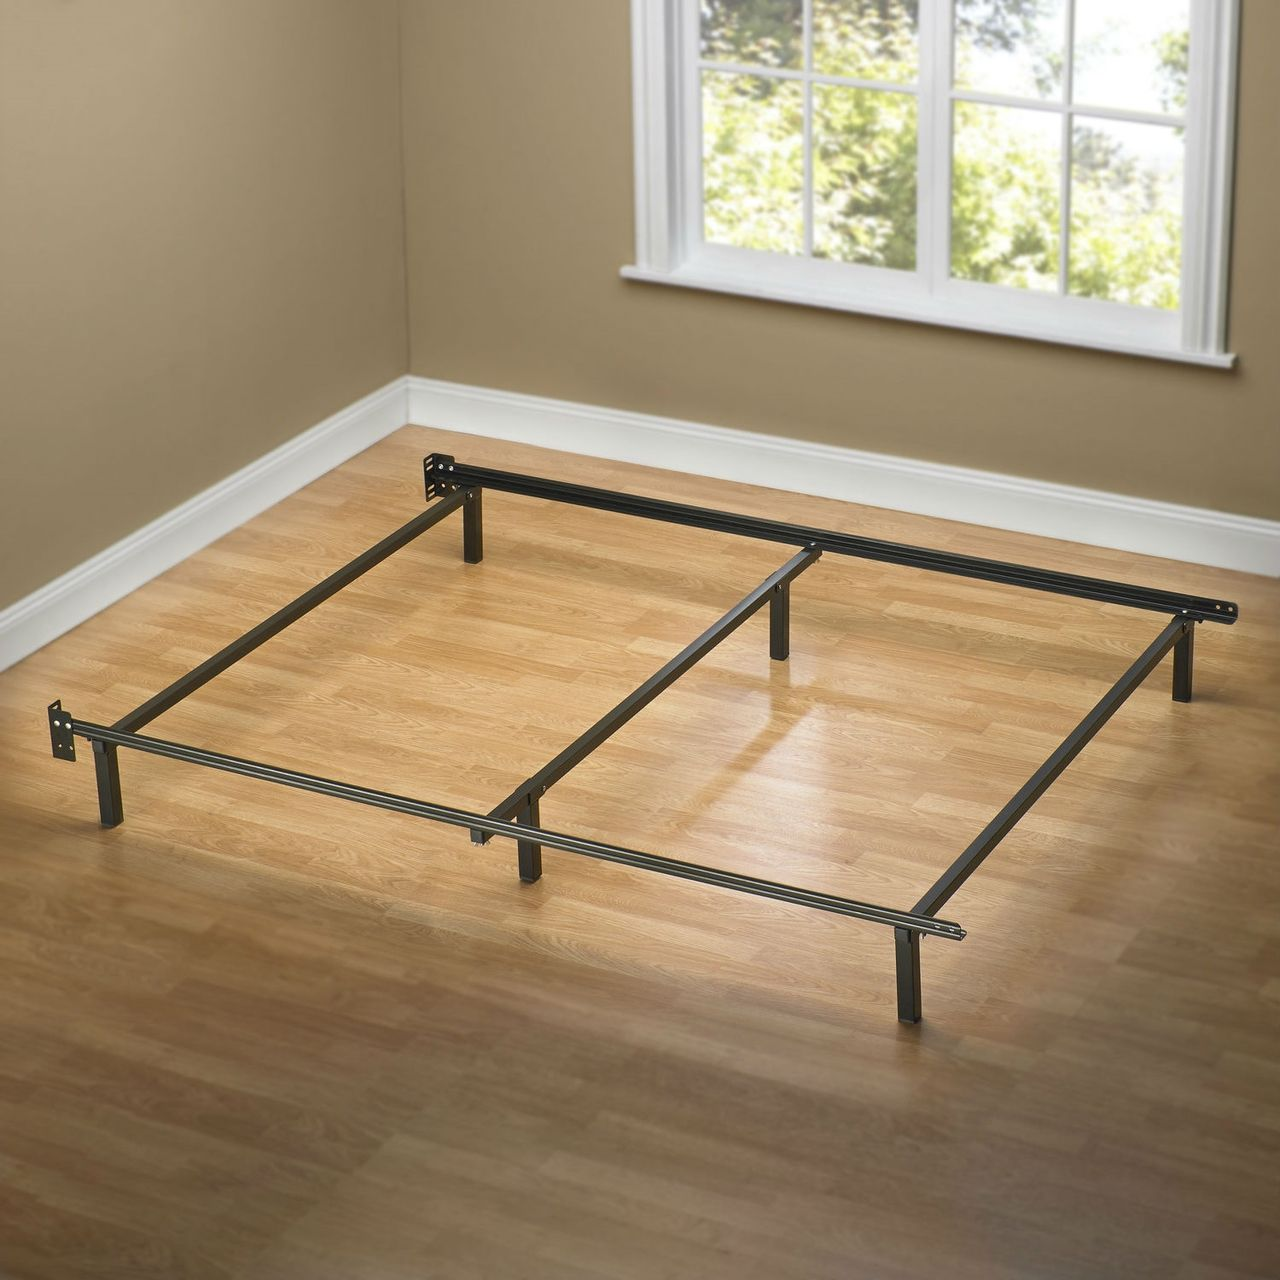 Queen Size 6 Leg Metal Bed Frame With Headboard Brackets Quality